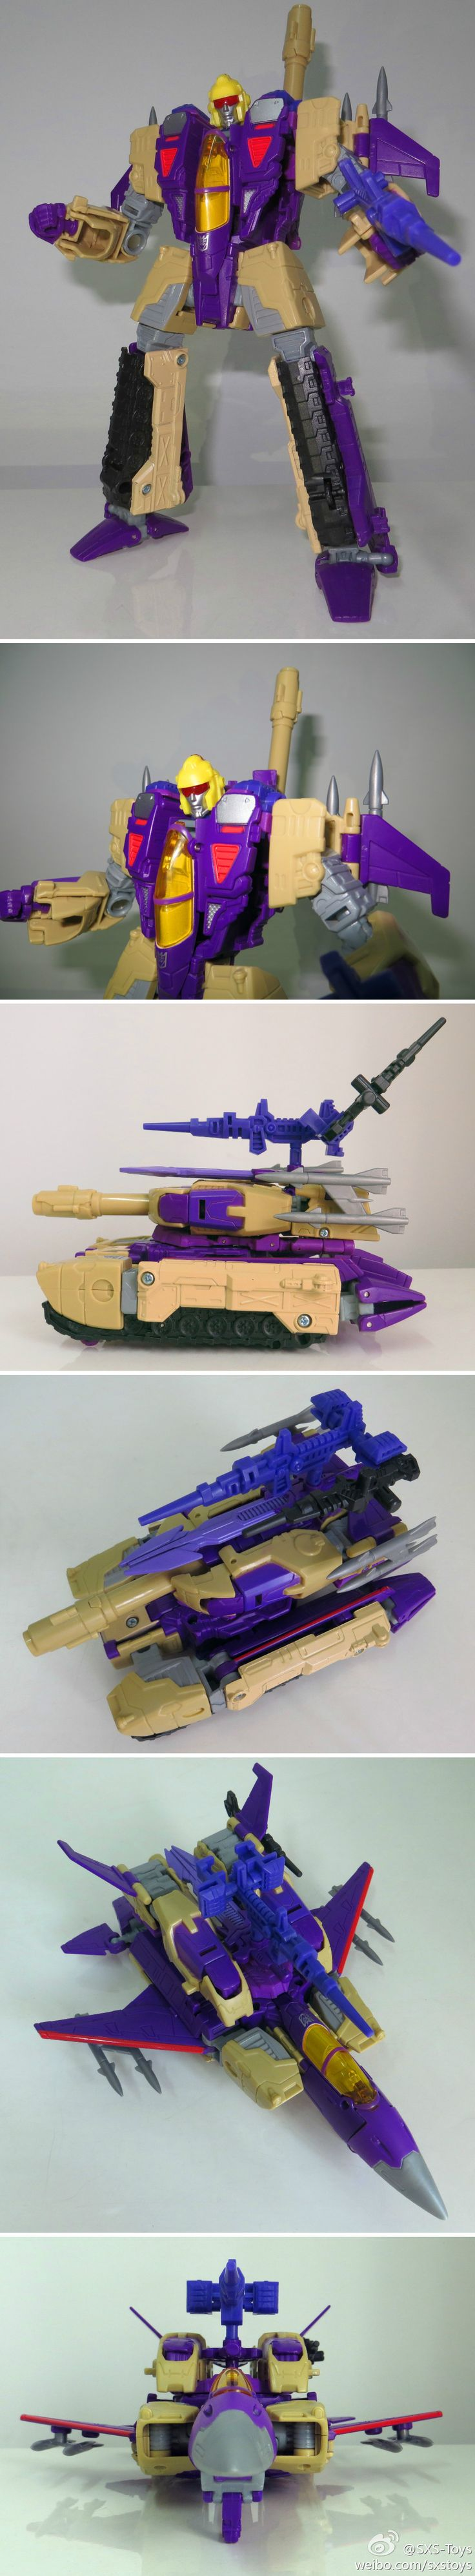 SXS announced A-03 upgrade for Generations Blitzwing #factorytoy